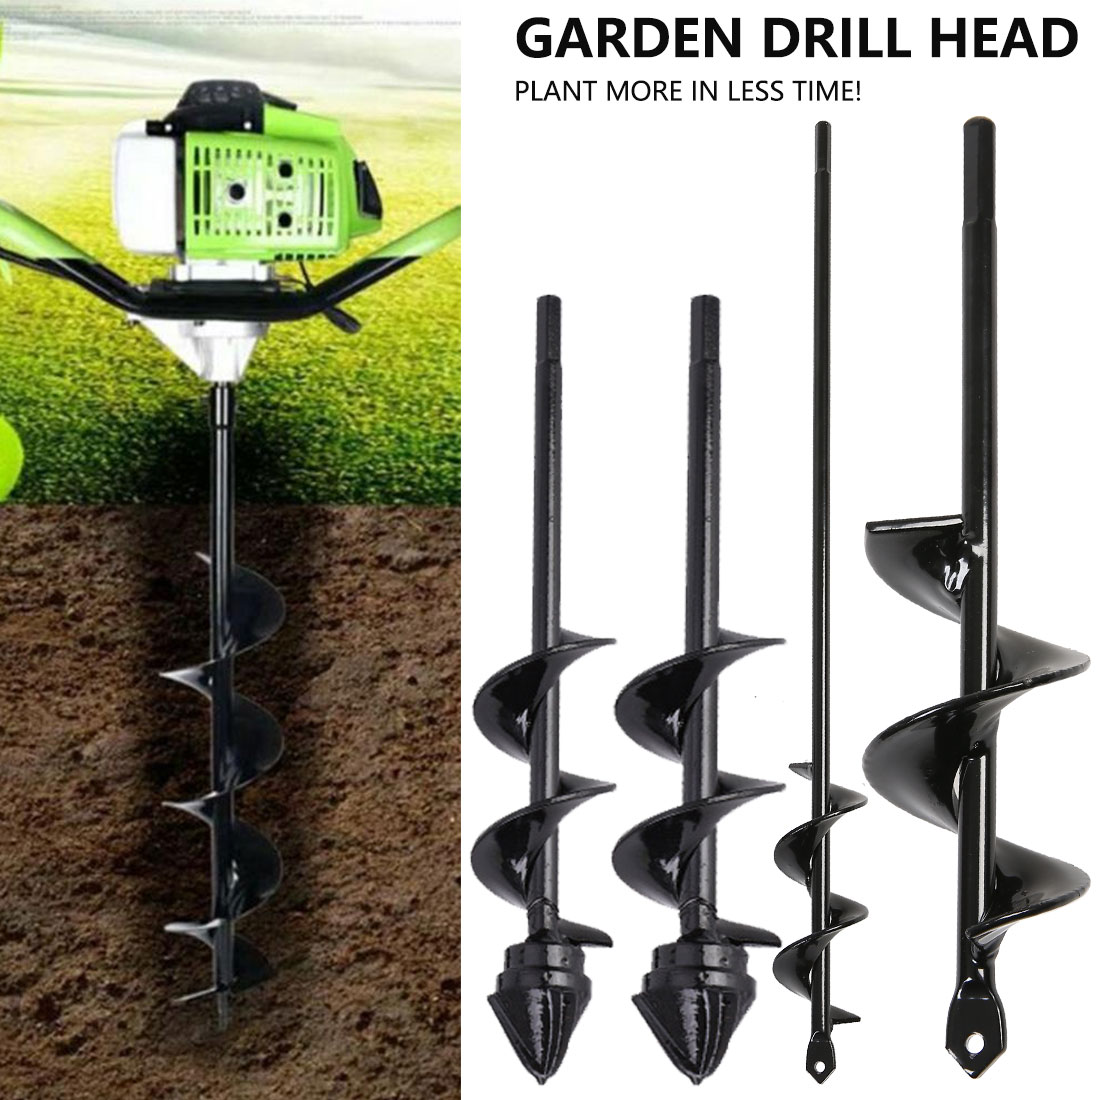 6 Sizes Garden Auger Drill Bit Tool Spiral Hole Digger Ground Drill Earth Drill For Seed Planting Gardening Fence Flower Planter